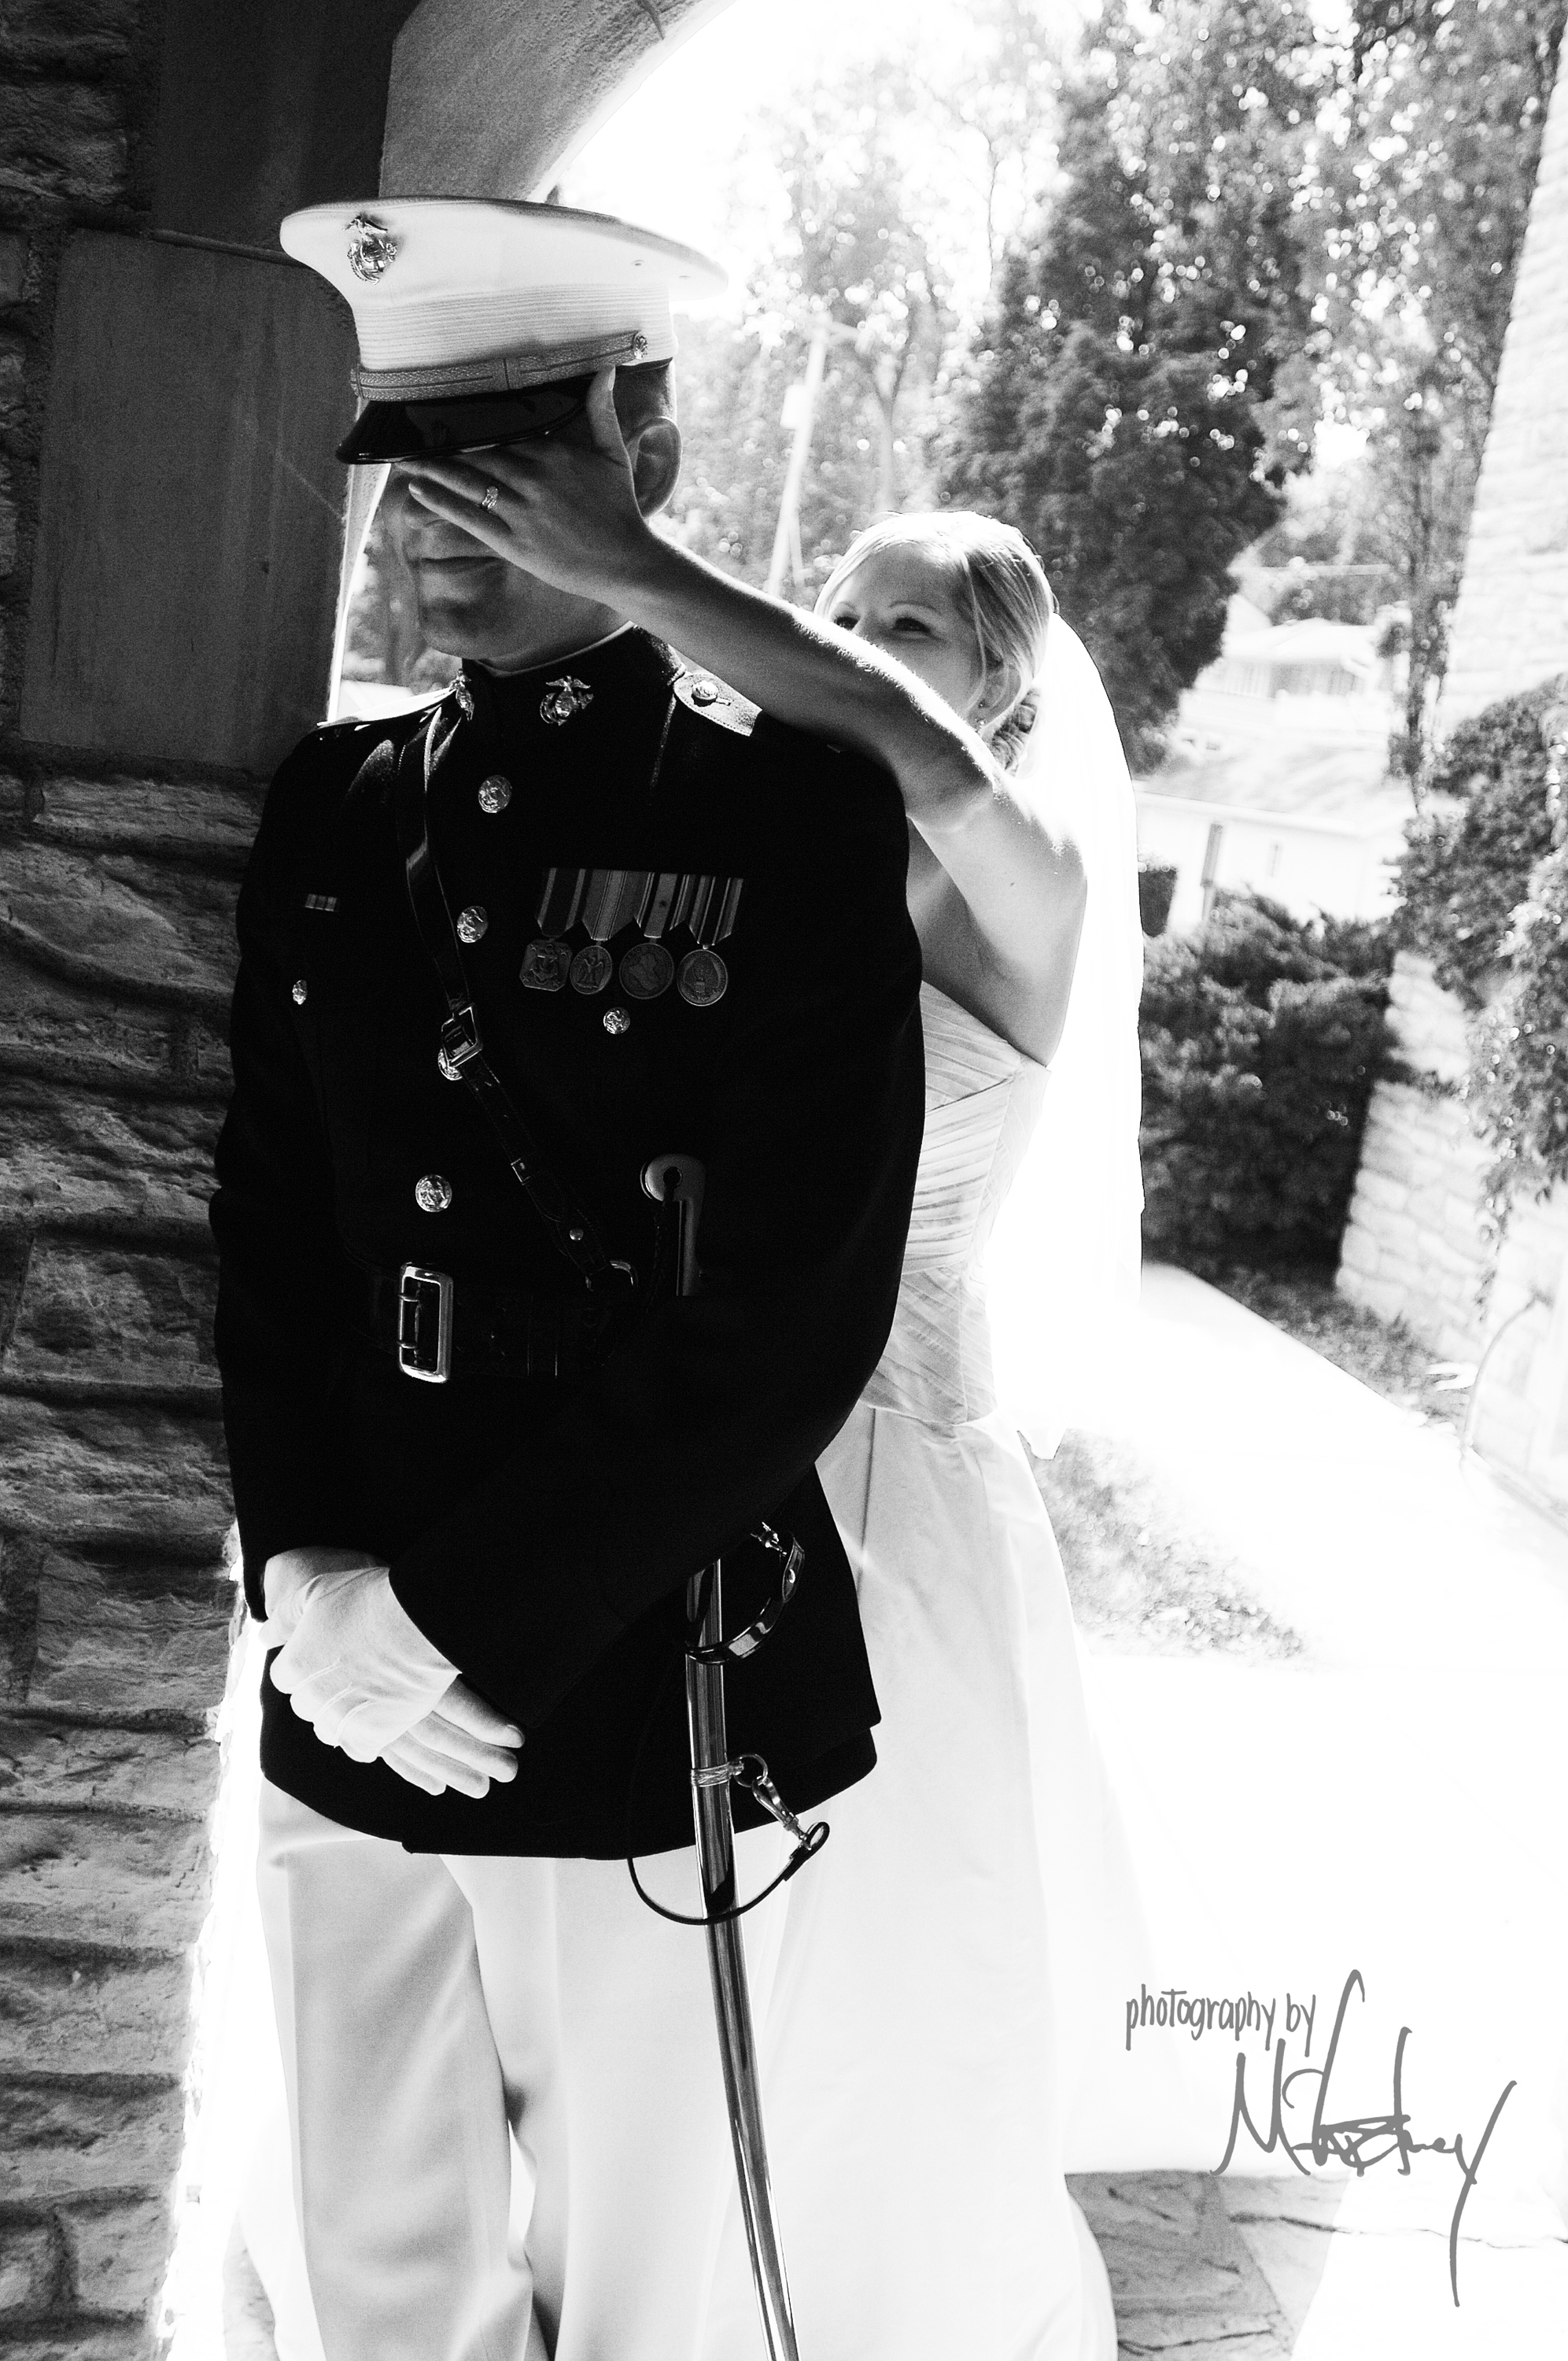 white, black, Bride, Groom, Marine, First meeting, Meet, Photography by mccartney, Sneaky, Sneak